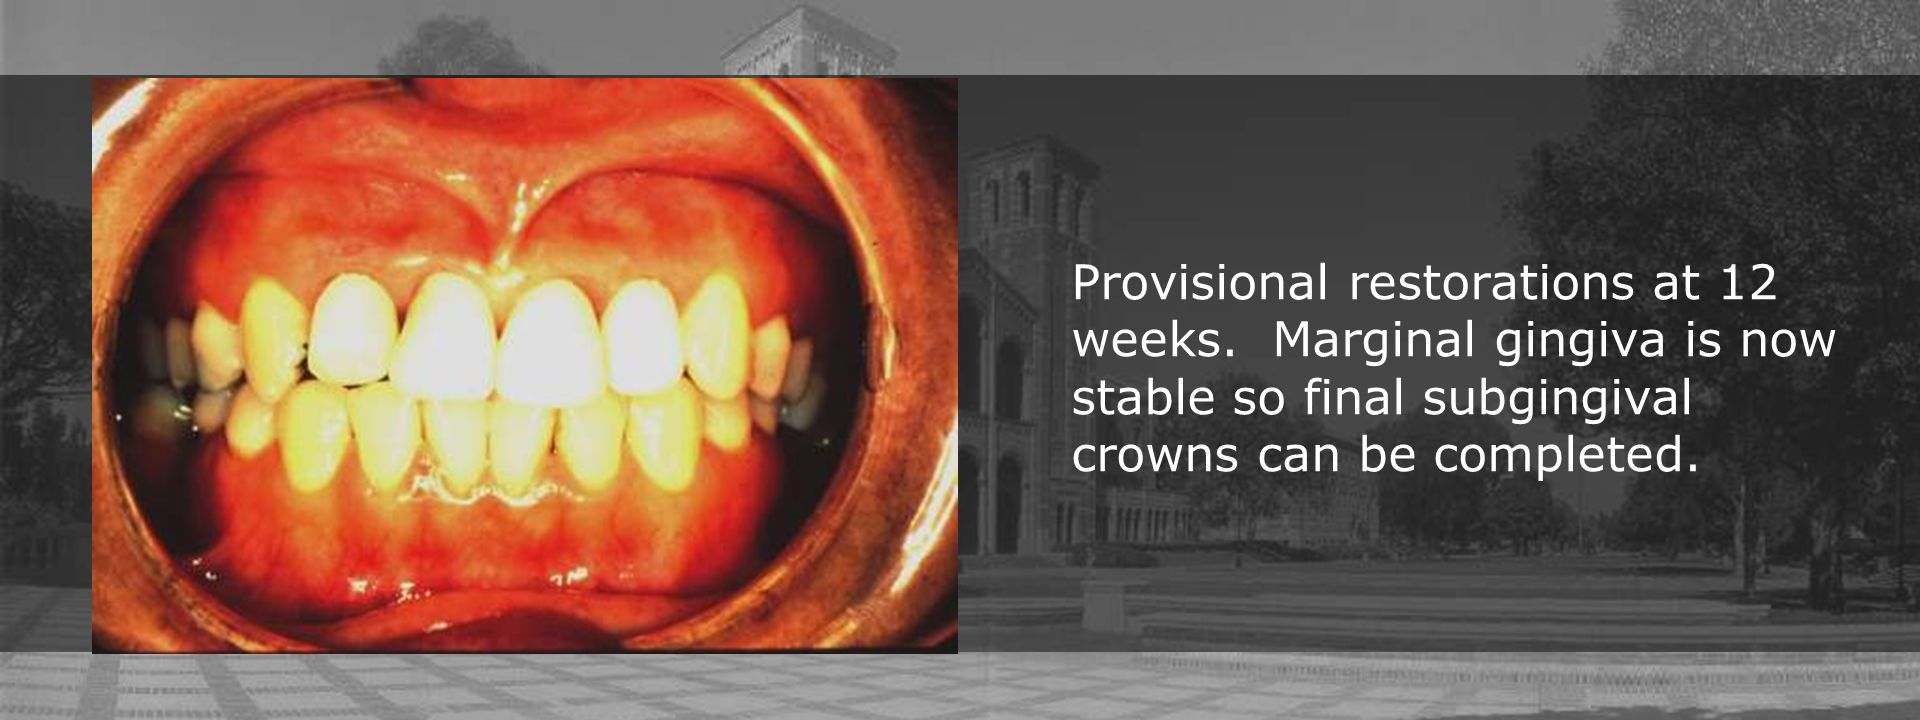 Provisional restorations at 12 weeks